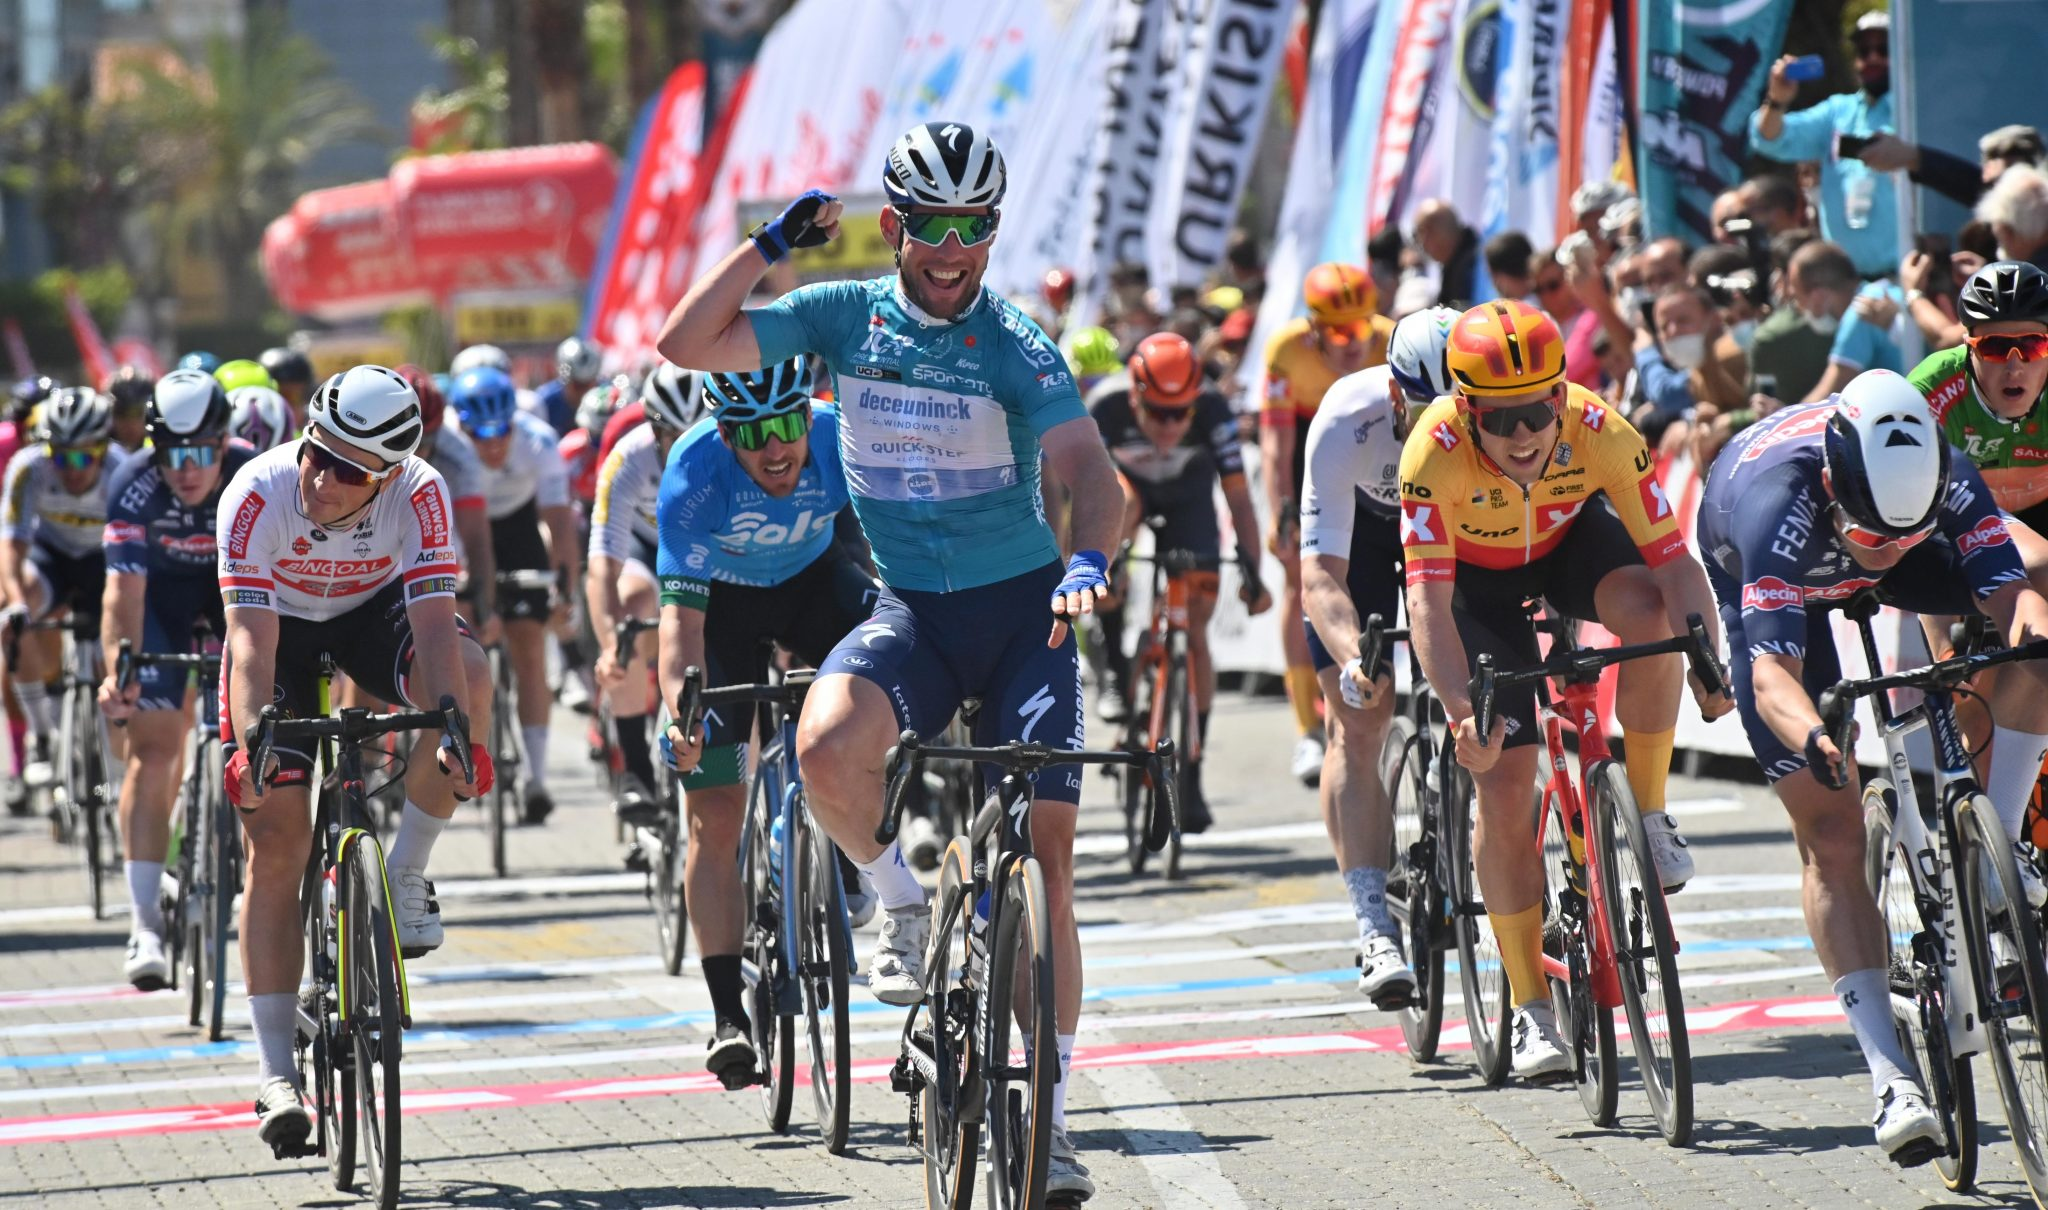 CAV GETS ANOTHER! — TOUR OF TURKEY 2021 STAGE 3 RESULTS